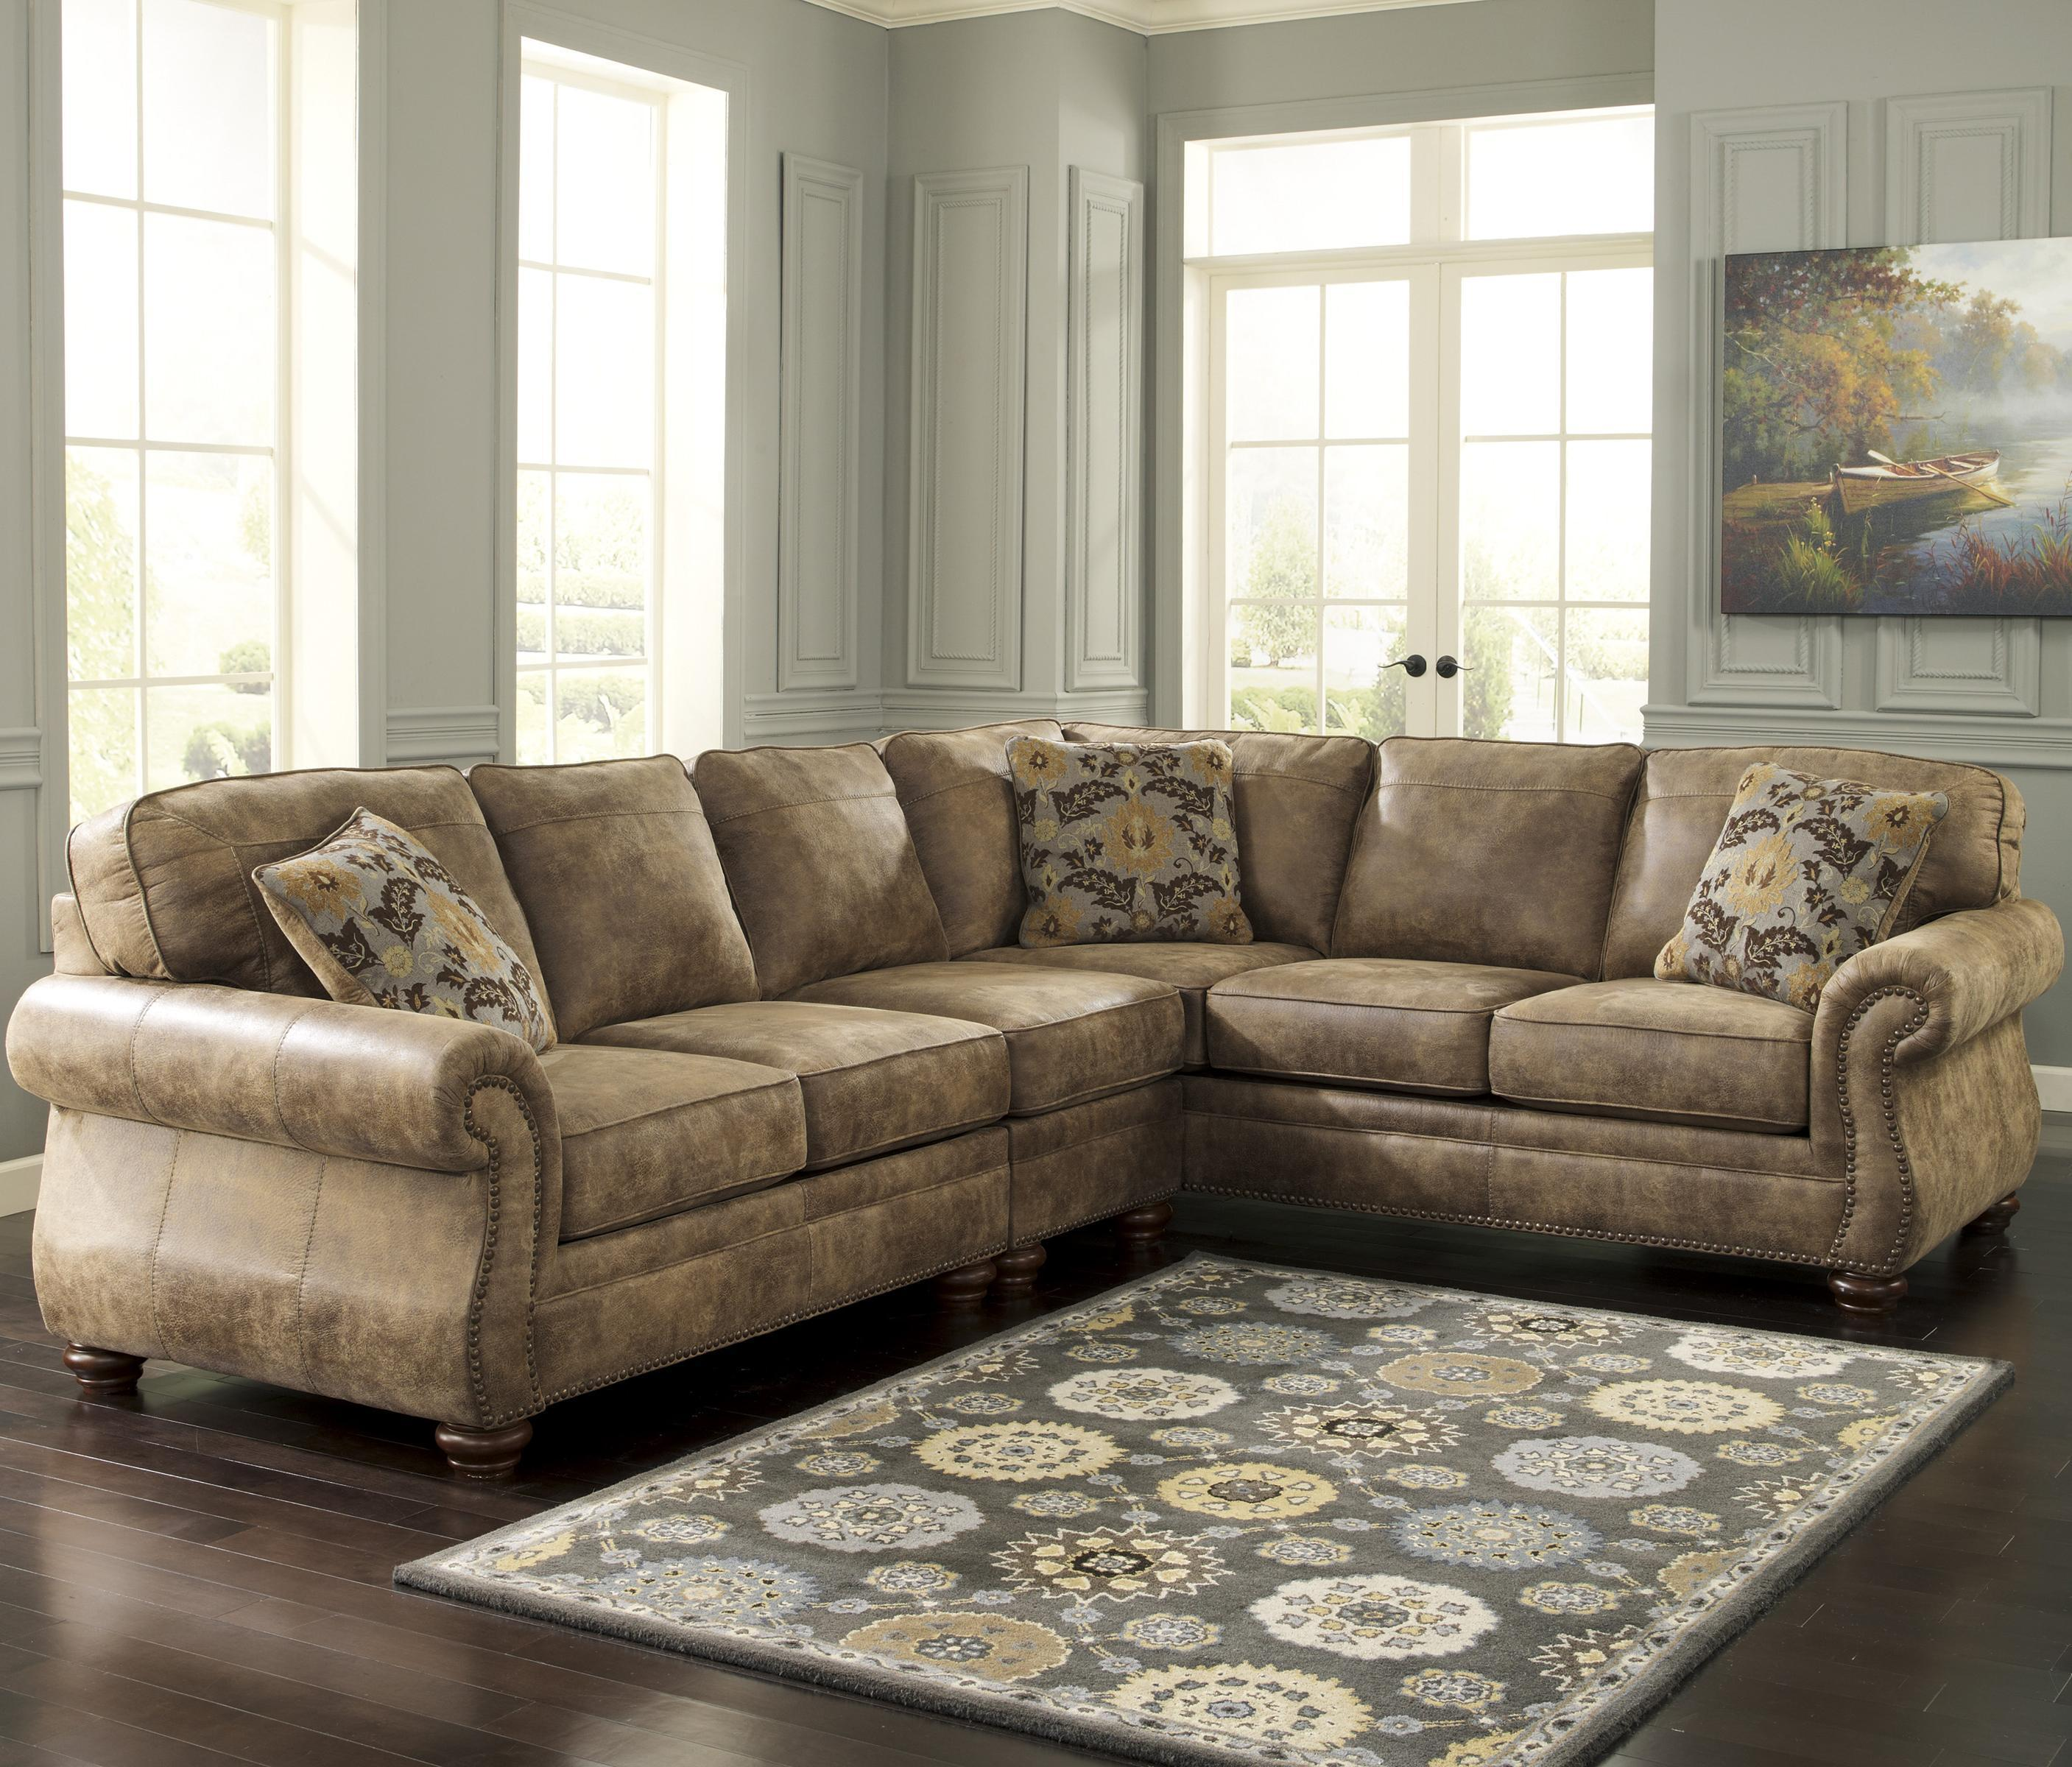 Sofa Mart Spokane Valley Wa Signature Design By Ashley Larkinhurst Earth Roll Arm Sectional